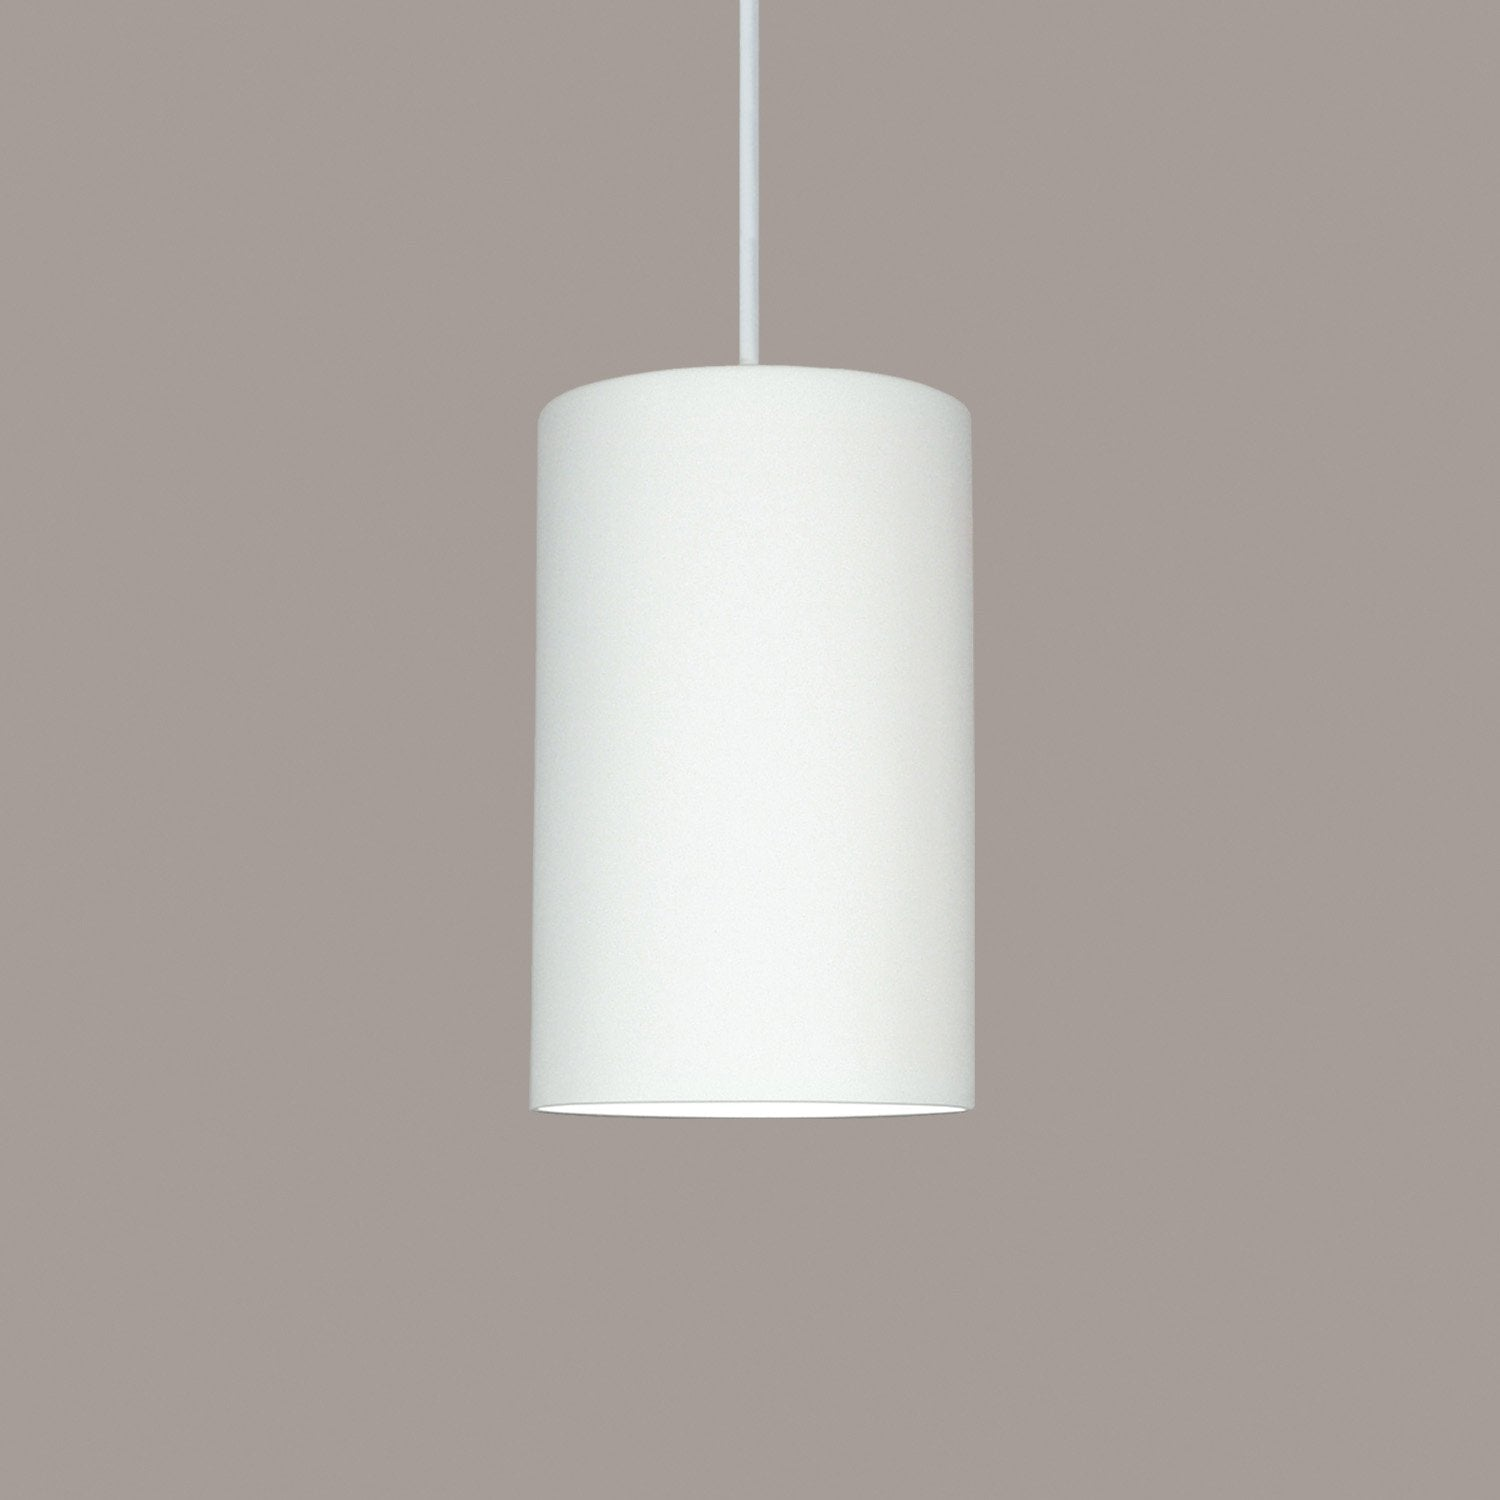 A19 P201-CFL13-A32-WCC Islands of Light Collection Andros Cream Satin Finish Pendant from A19